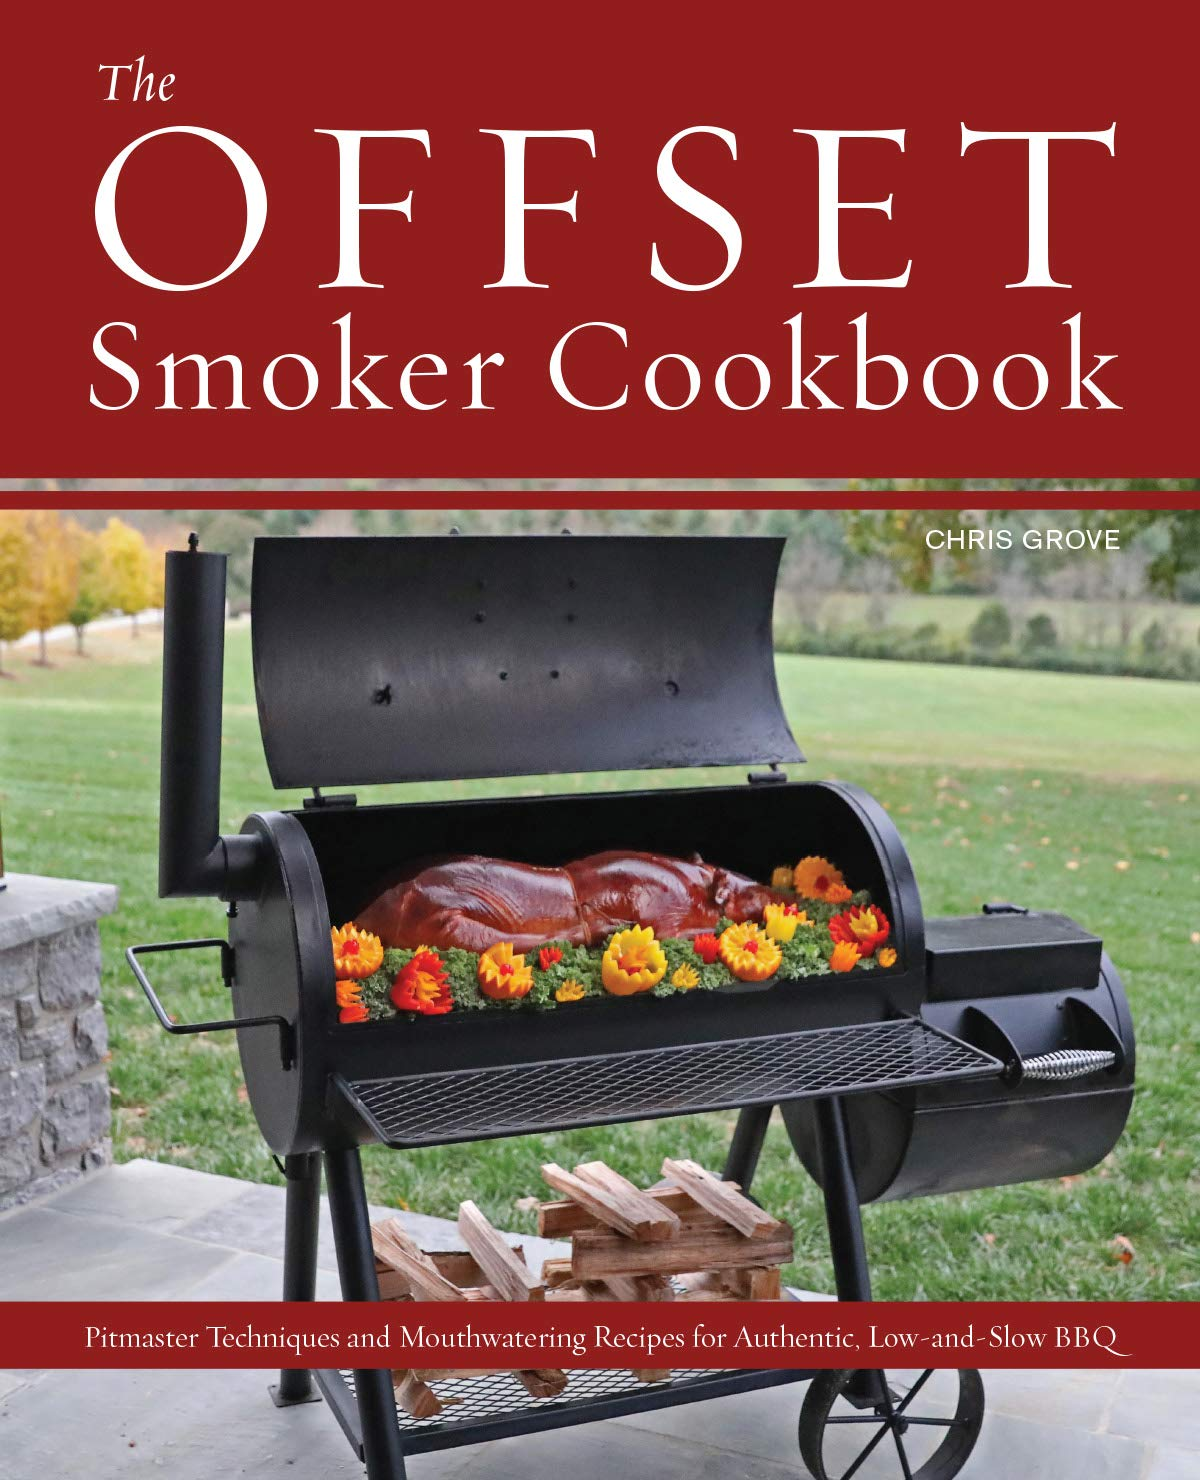 Fire Up The Grill The Art of Cooking Delicious Barbecue, Grilling & Smokin Recipes Cookbook